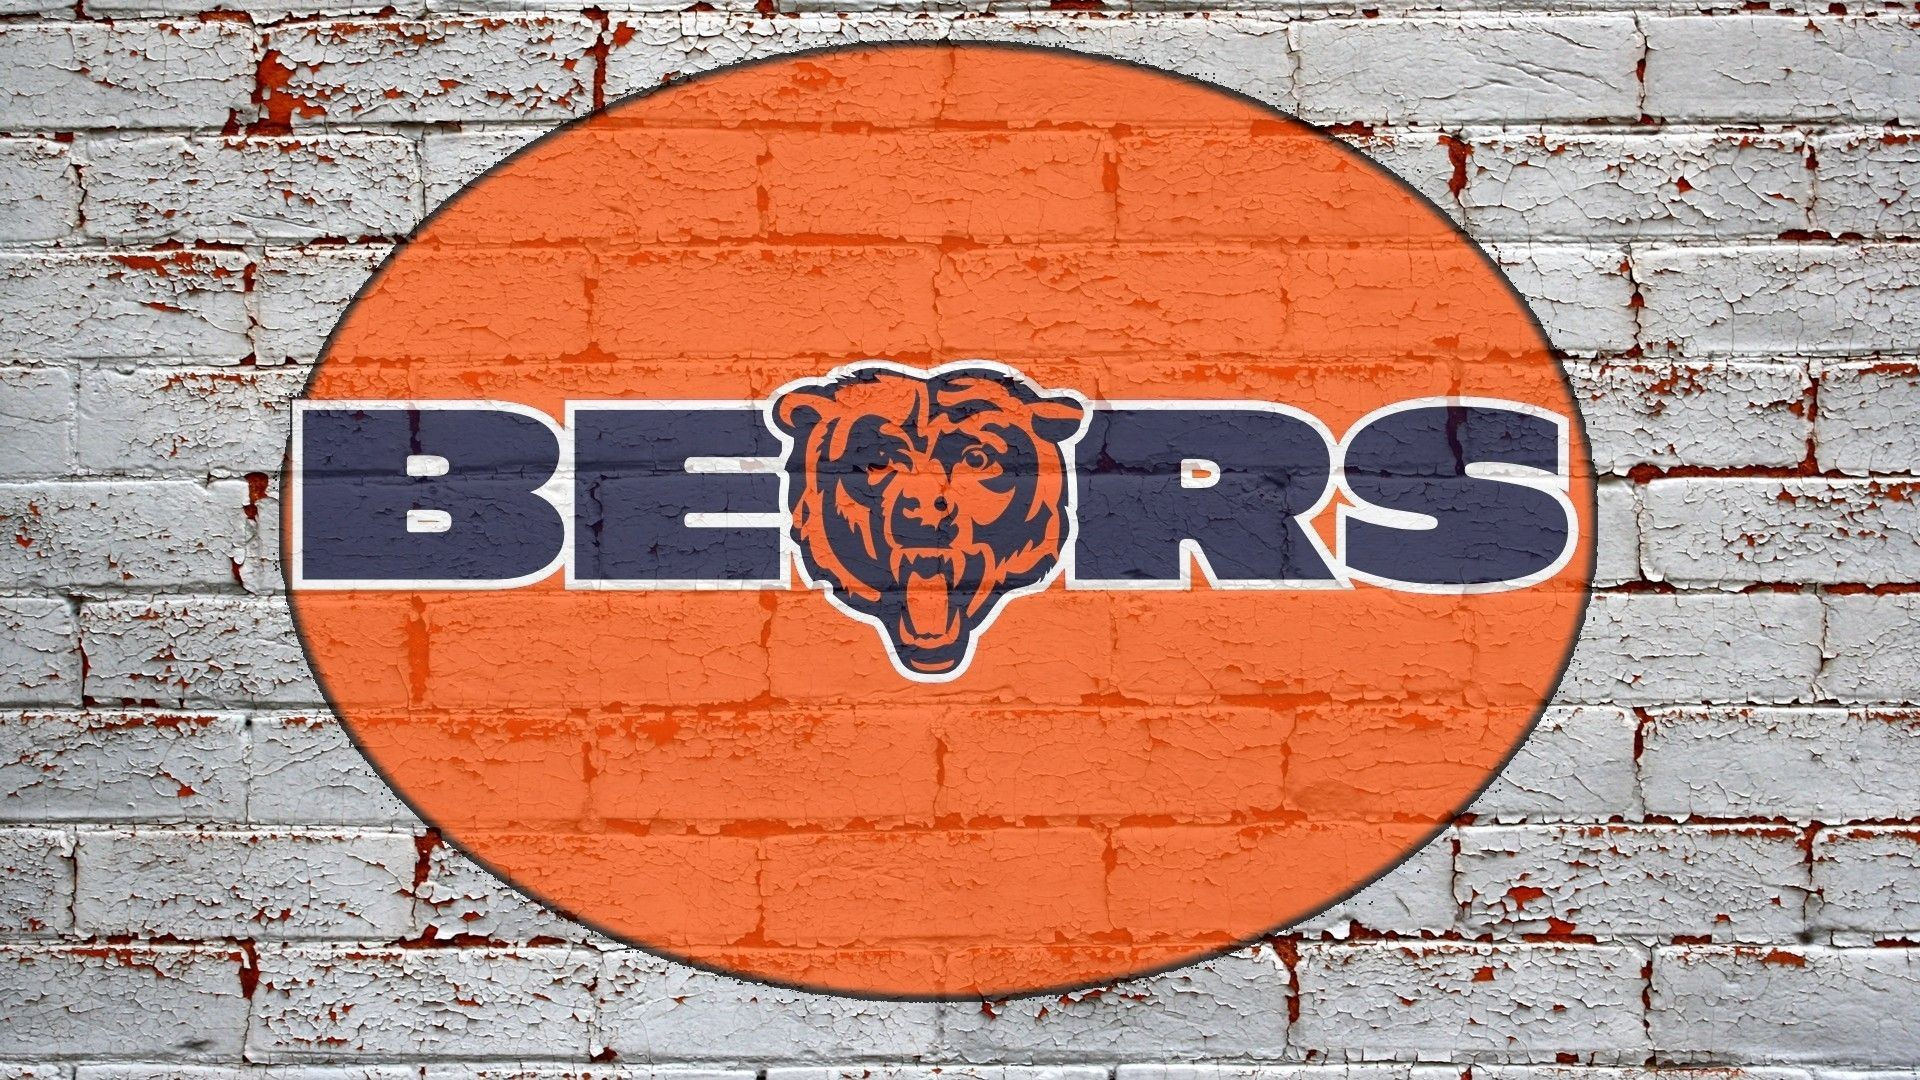 1920x1080 Chicago Bears Wallpaper